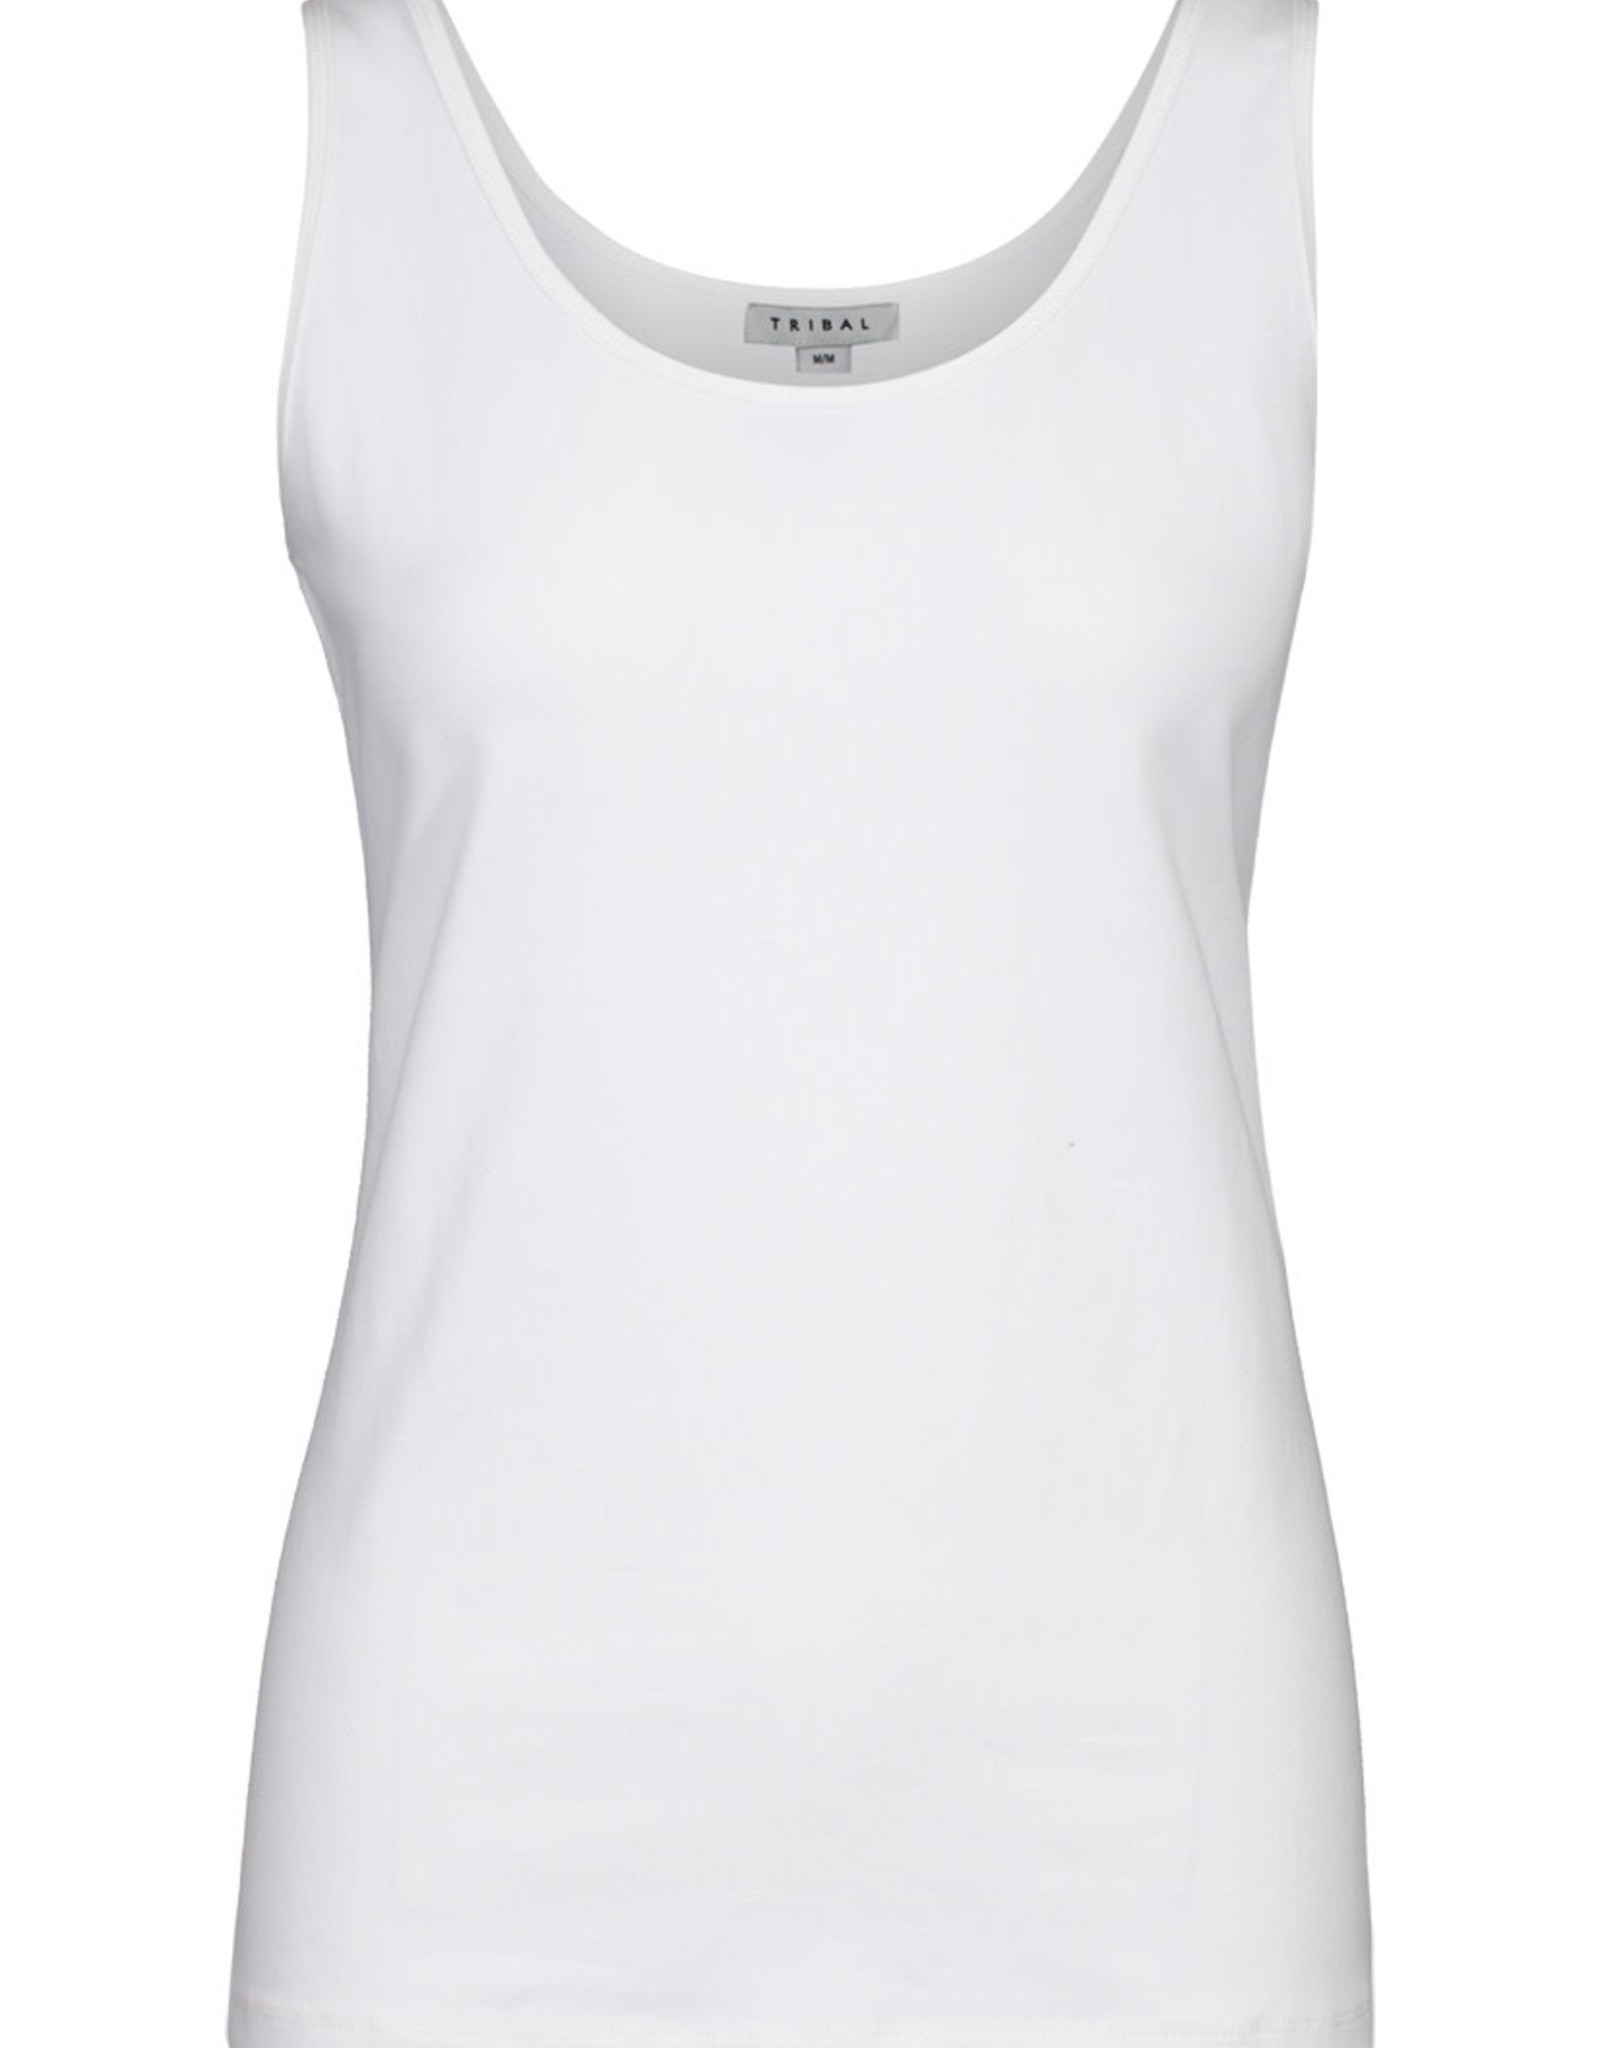 Tribal White Cotton Stretch Tank w/Roundneck